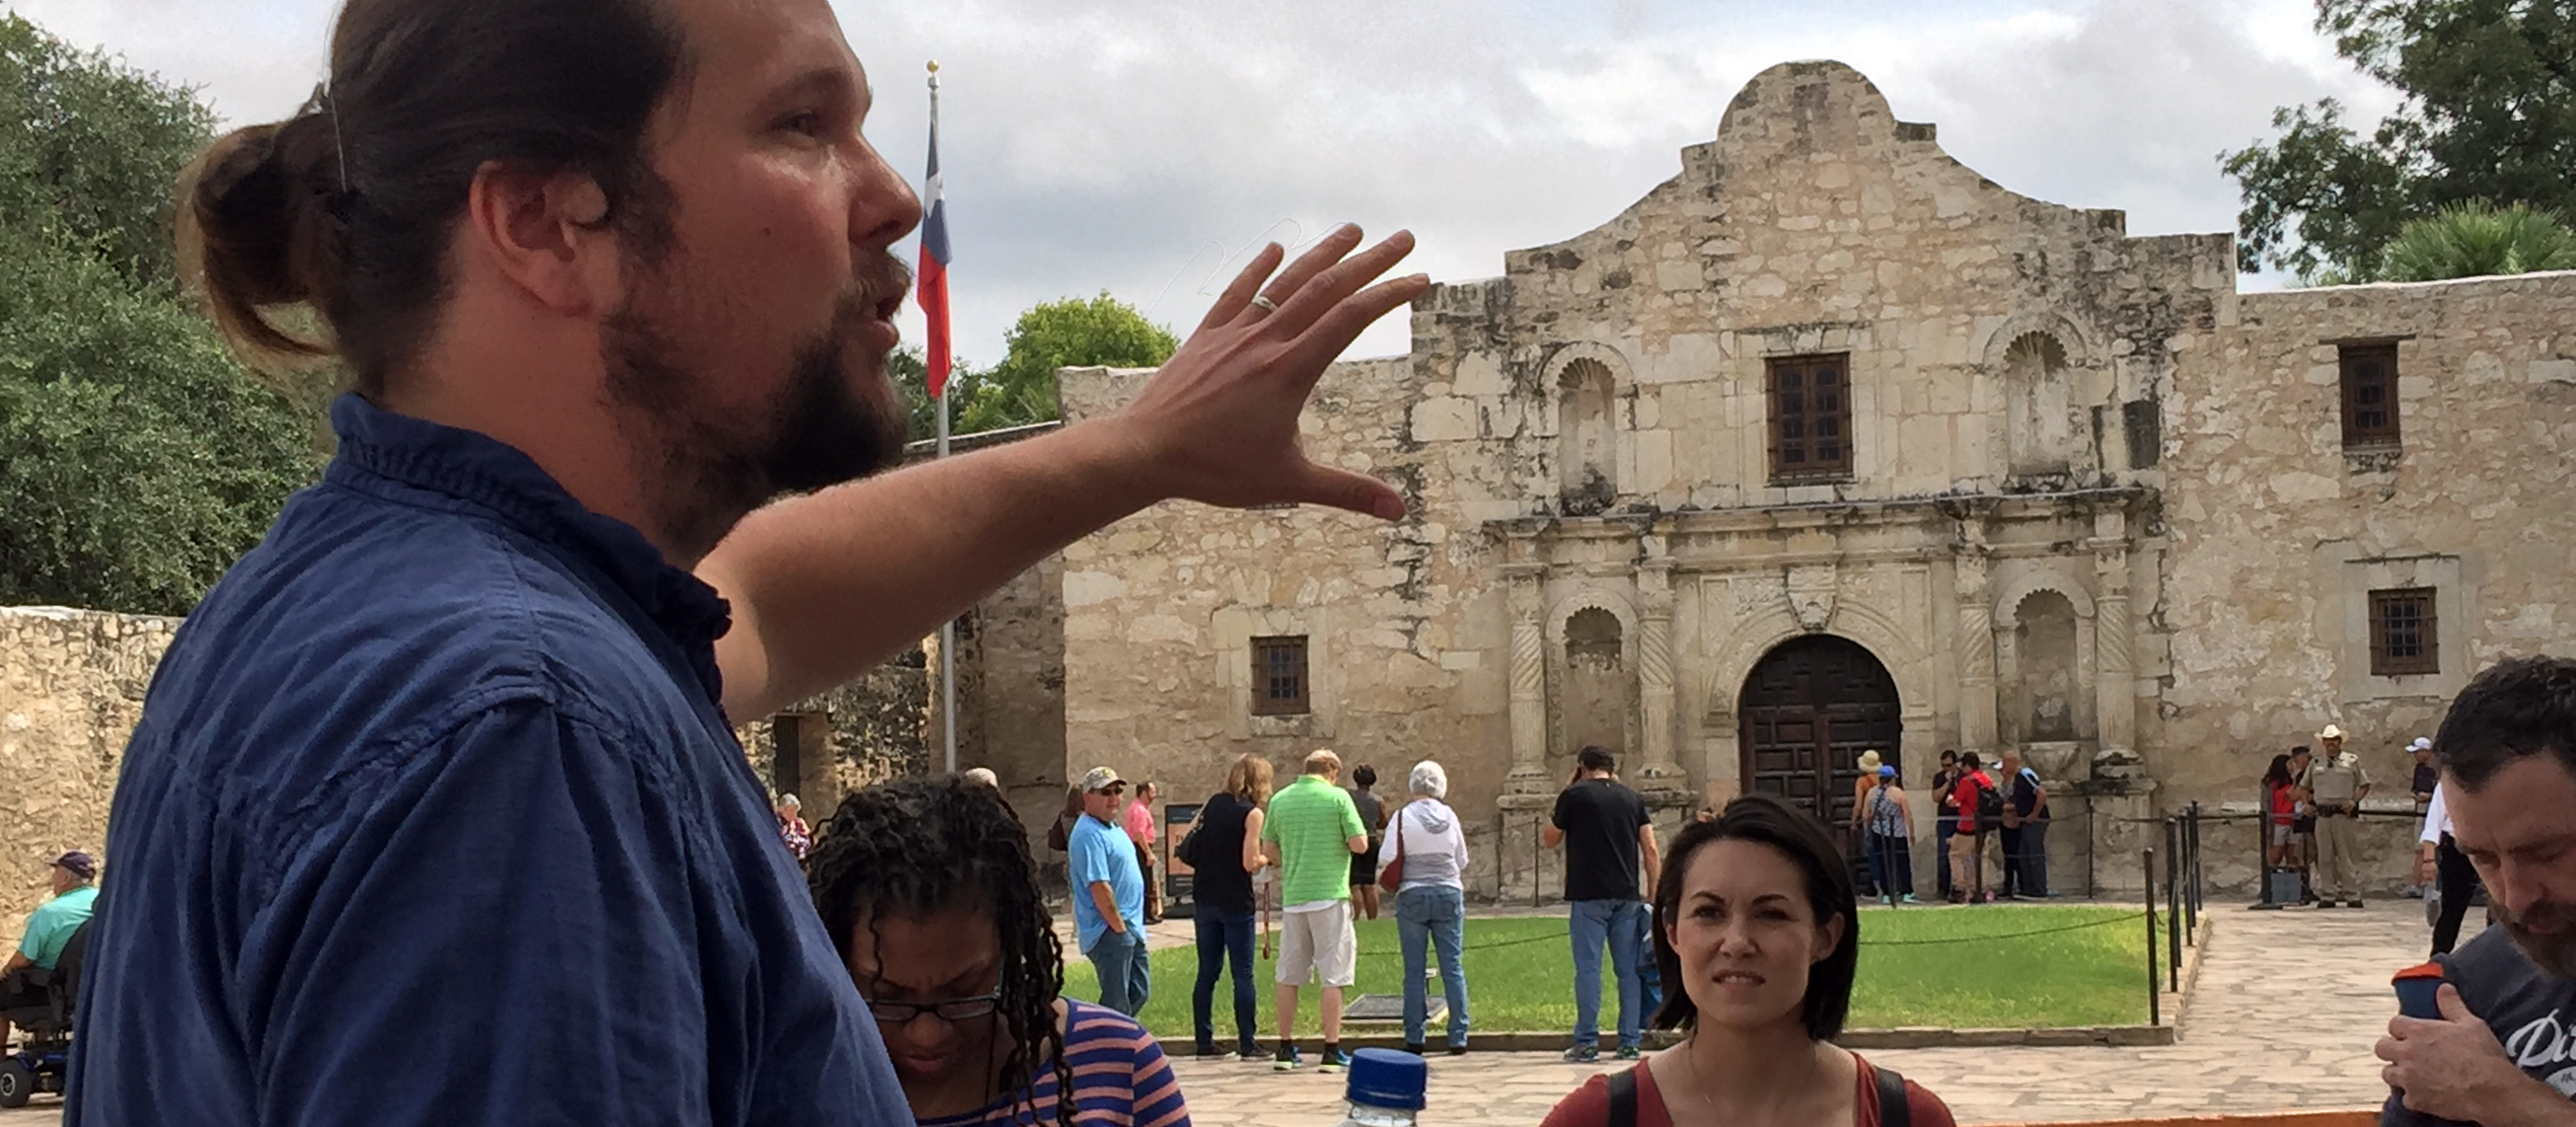 a tour guide talking about the Alamo